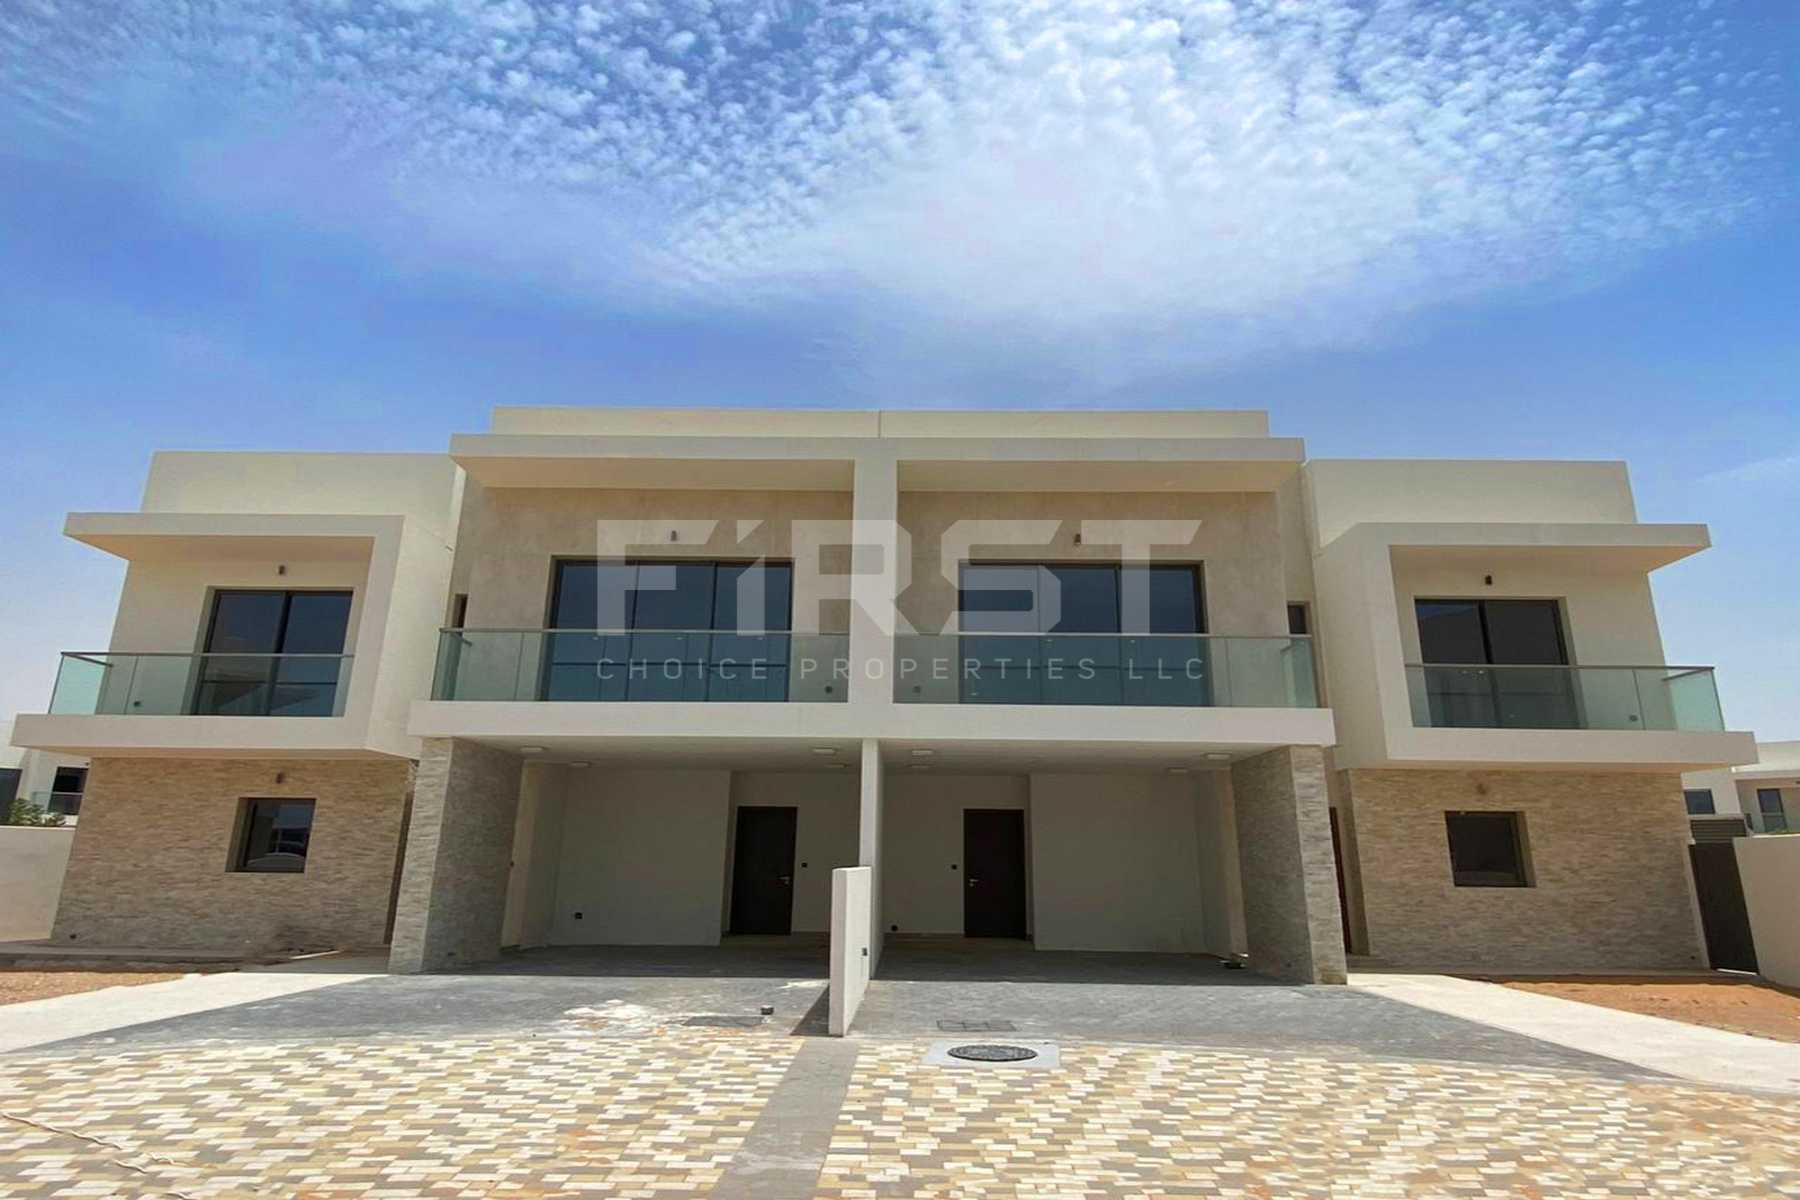 External Photo of 4 Bedroom Duplex Type 4Y in Yas Acres Yas Island Abu Dhabi UAE (1).jpg